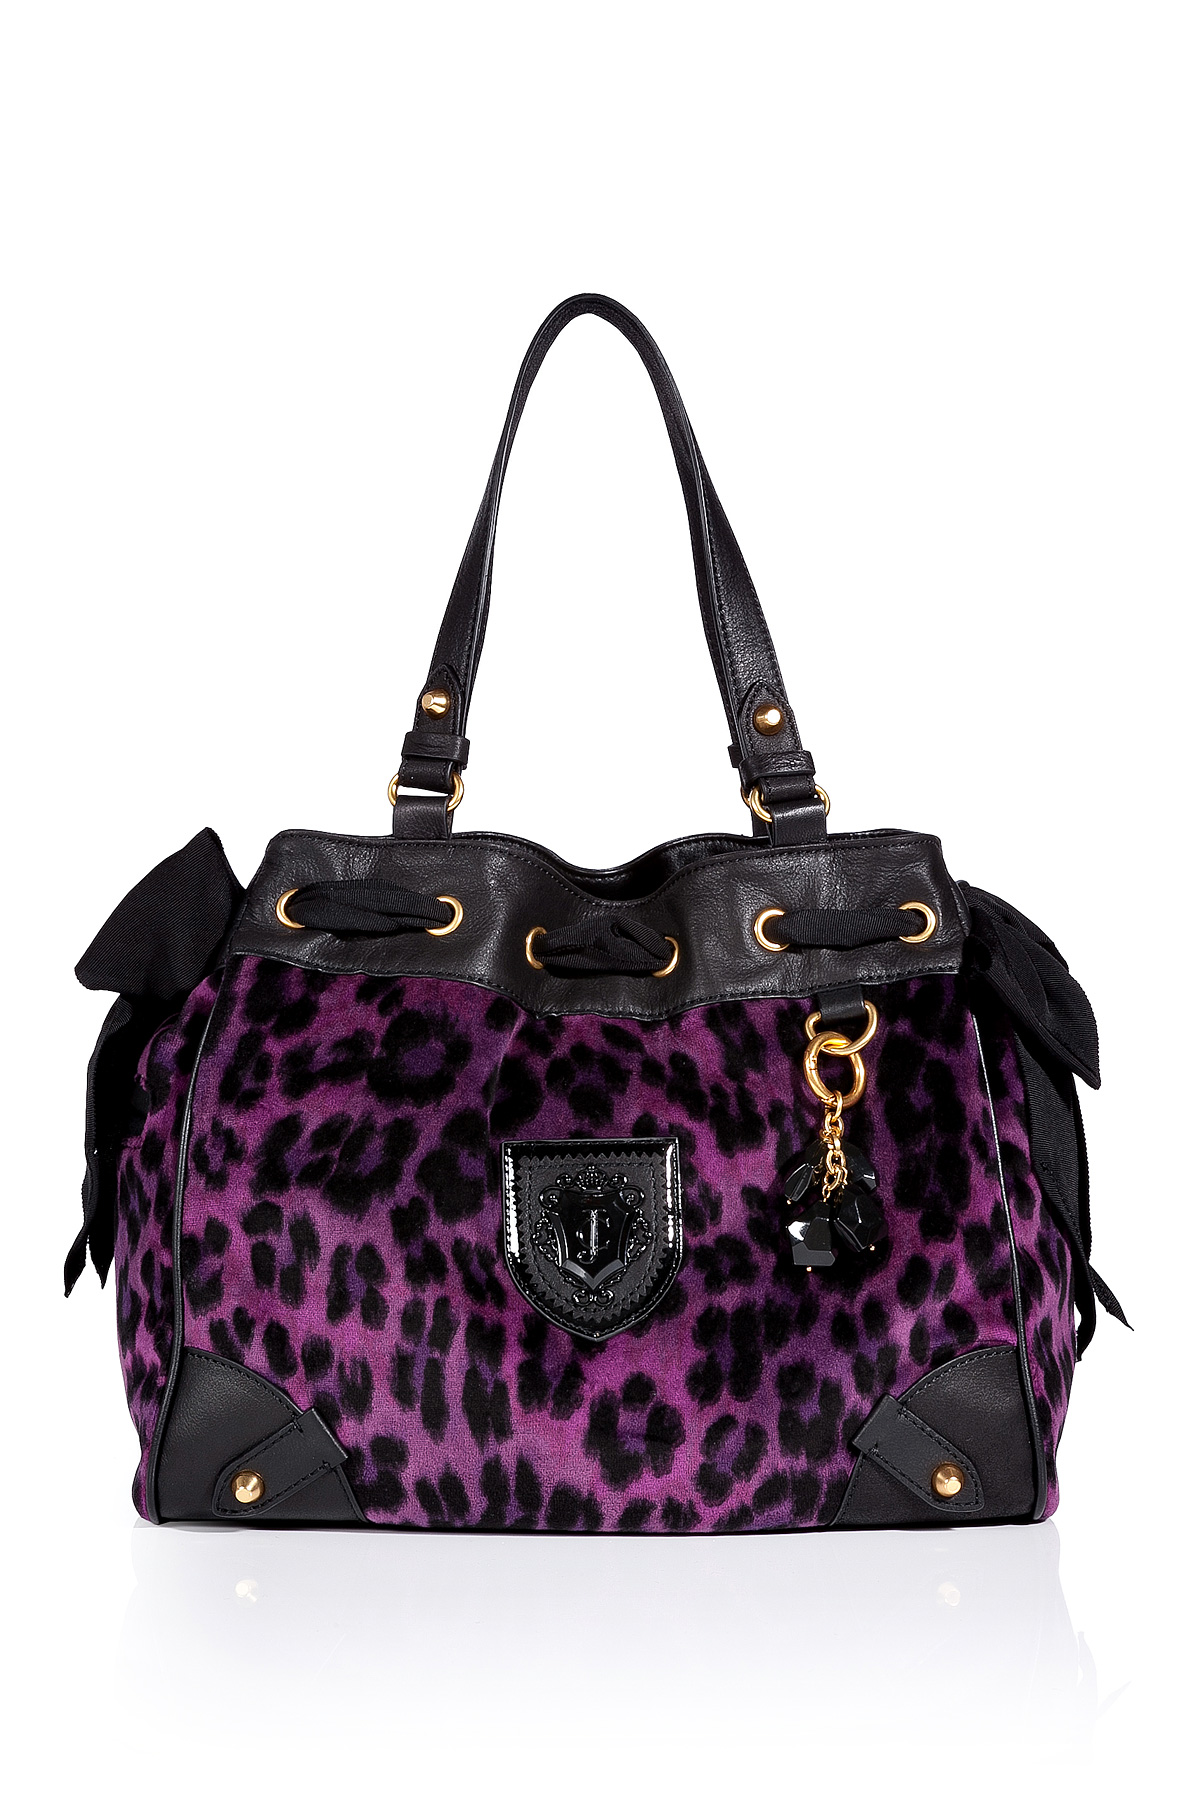 Juicy Couture Purple Leopard Velour Daydreamer Bag In